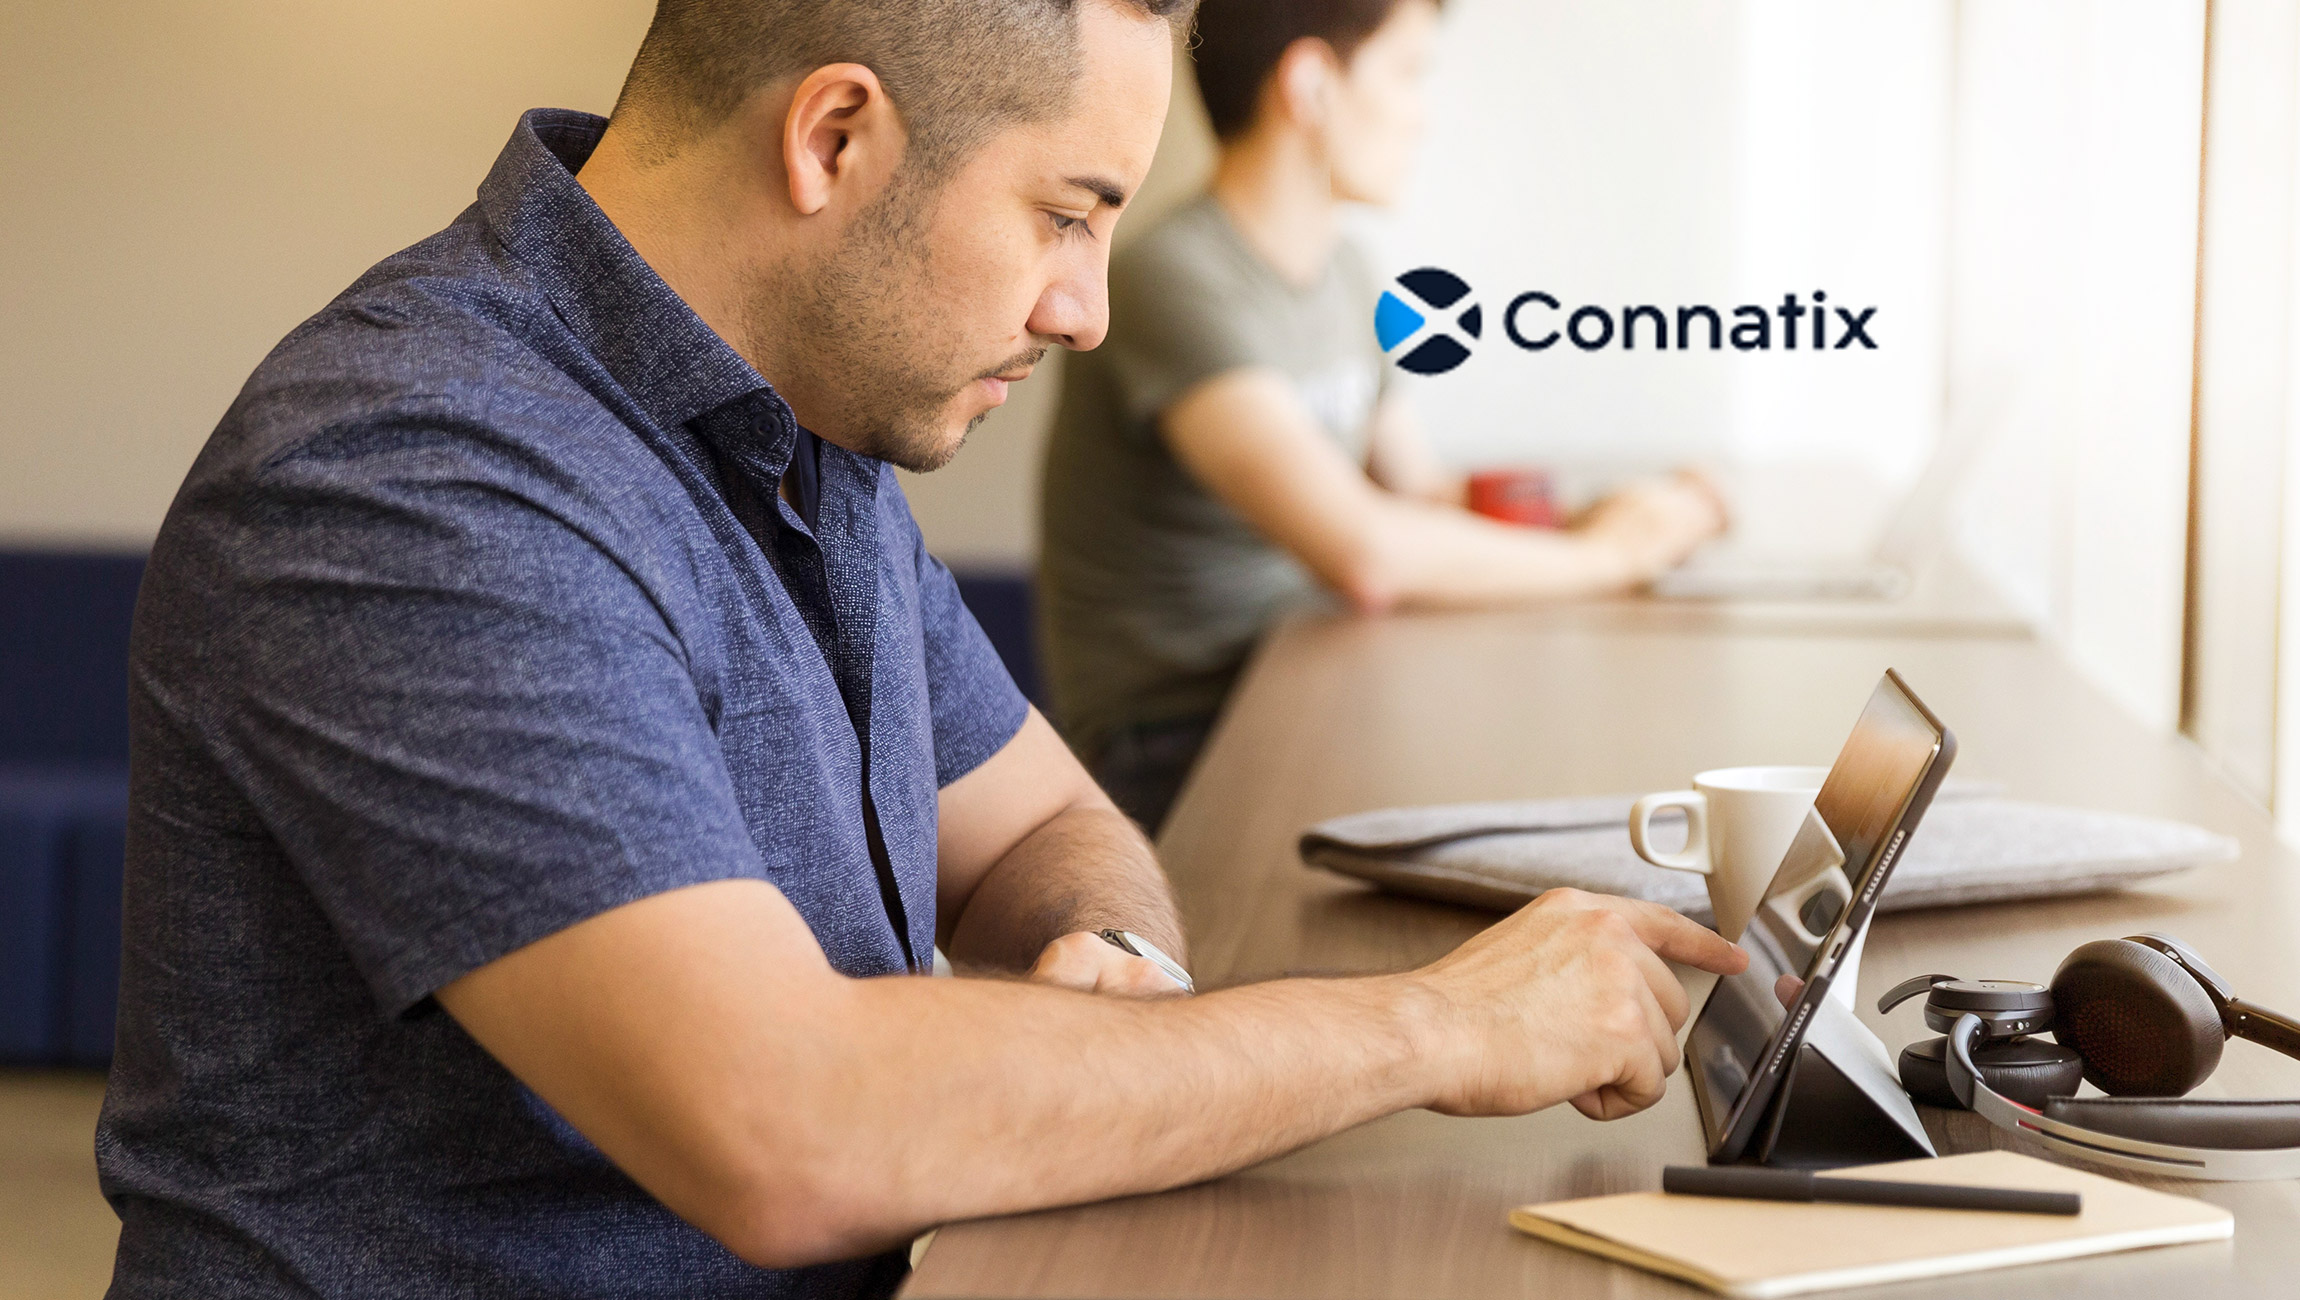 Connatix Launches Video Insights Engine to Provide Publishers Contextual Data, Analytics and Indexing